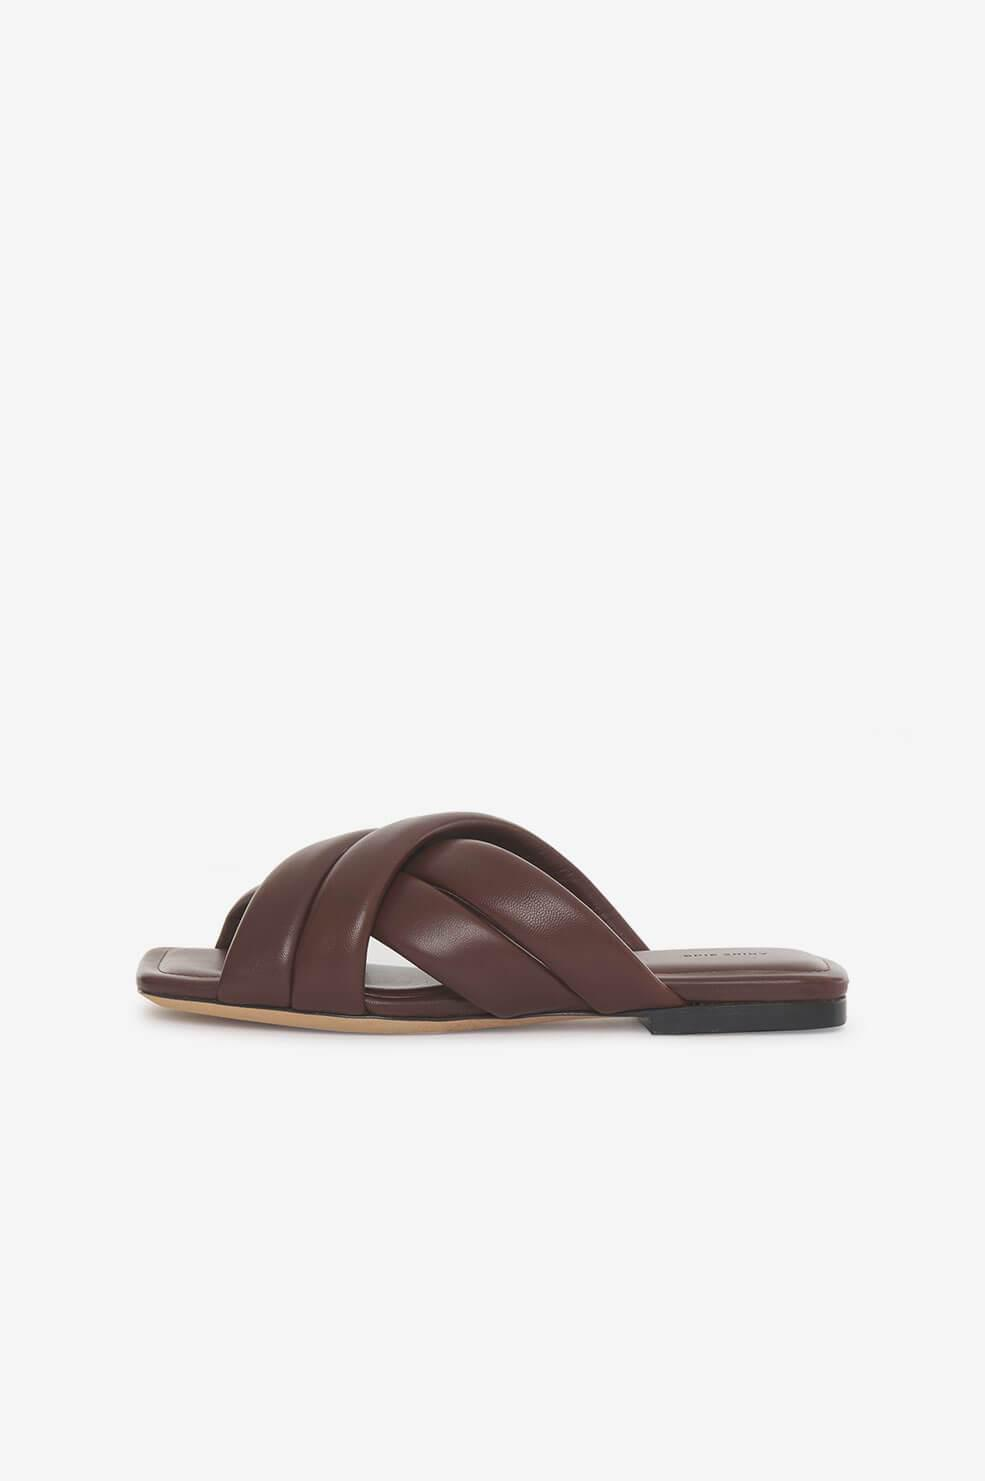 Eve Sandals - Chocolate Brown 4